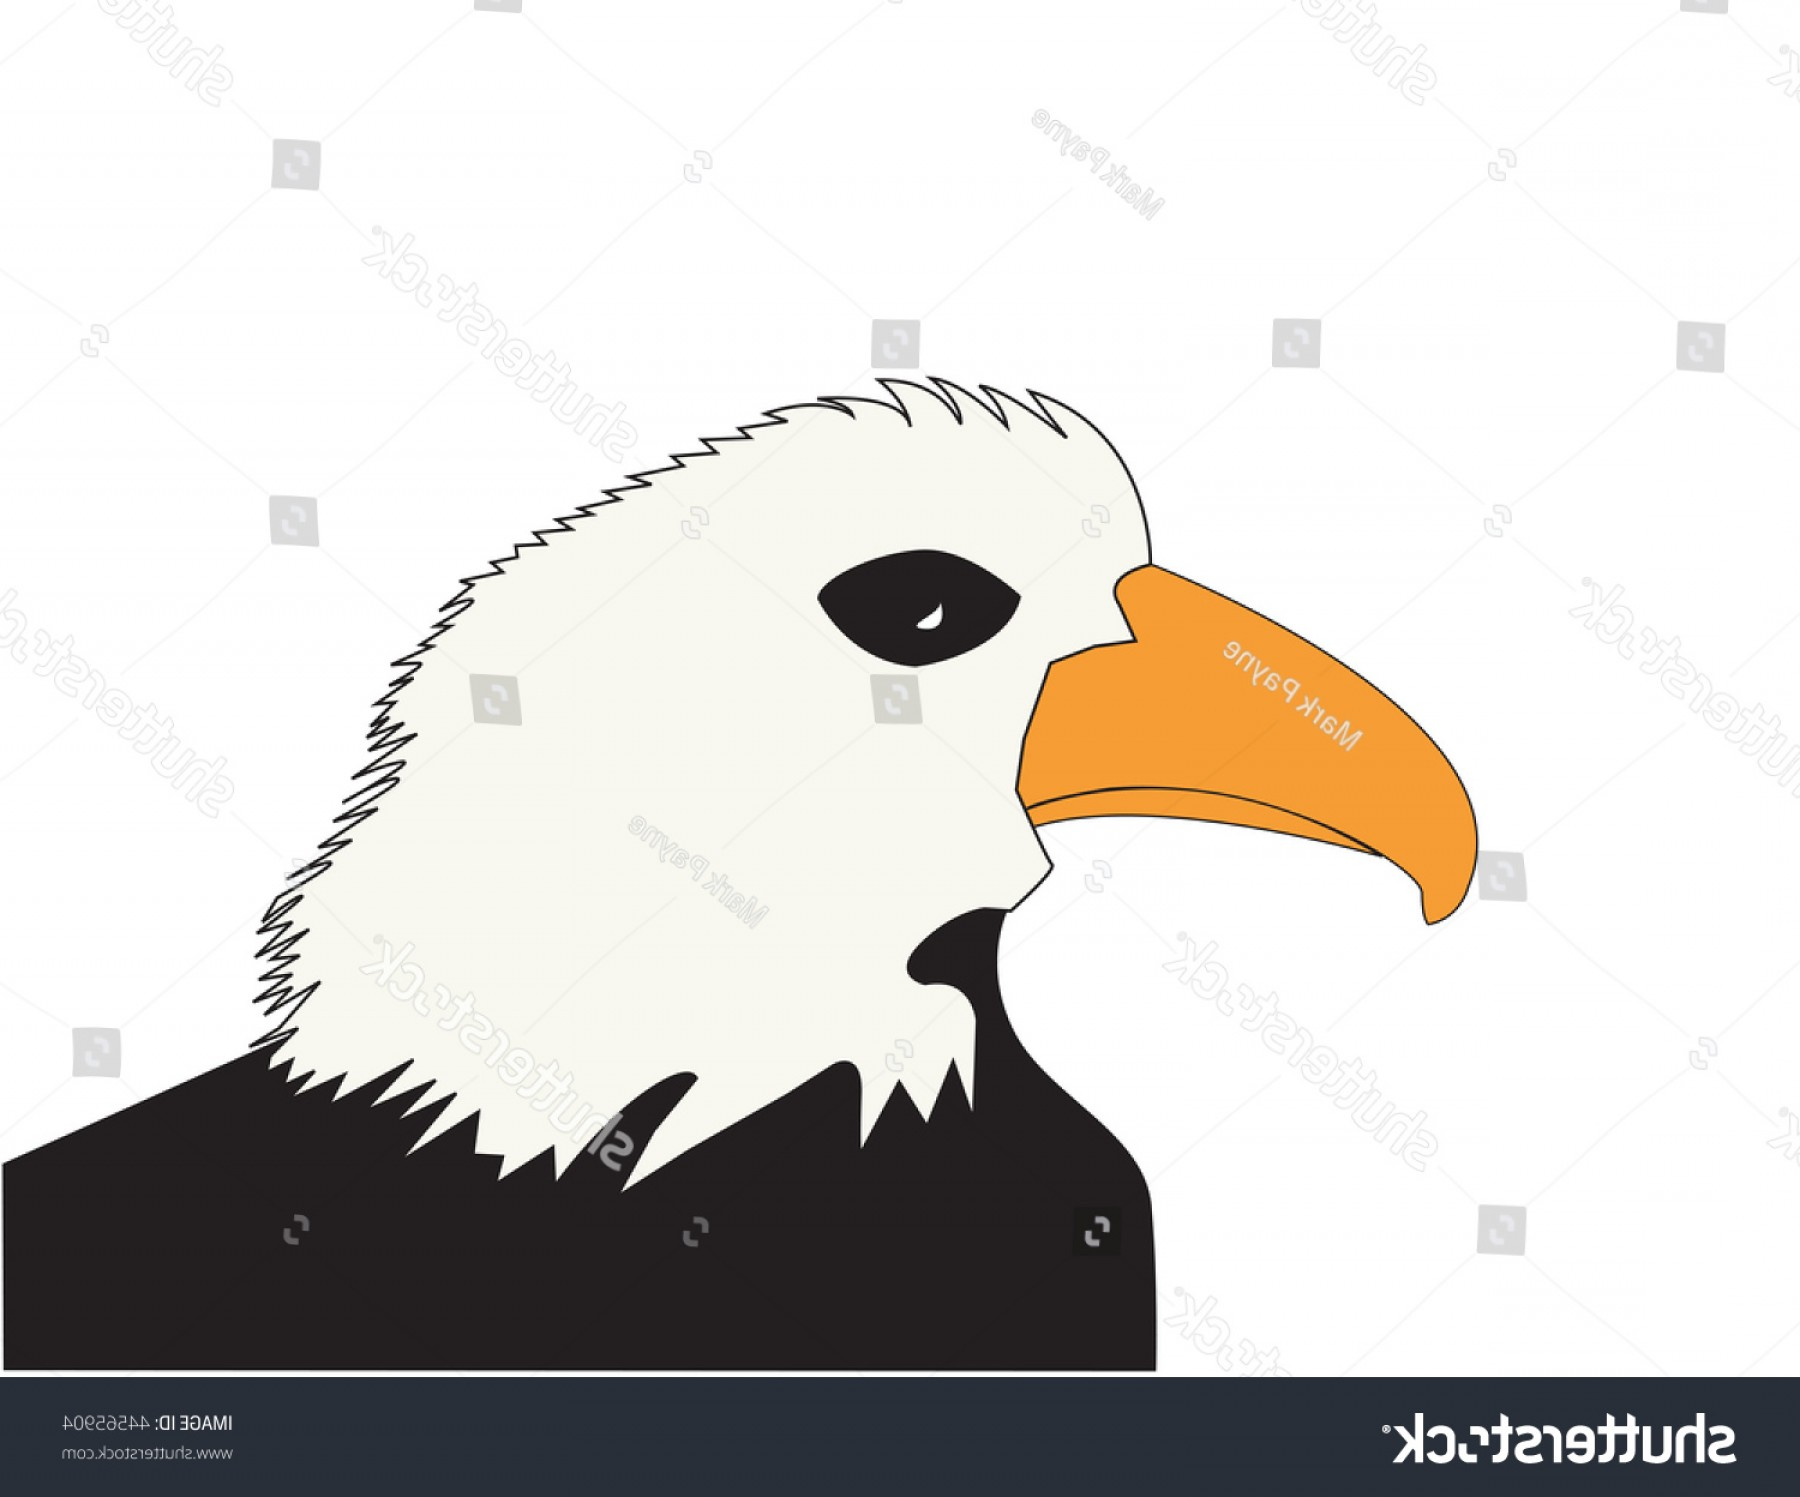 Patriotic Bald Eagle Vector: American Bald Eagle Patriotic Animal Symbol